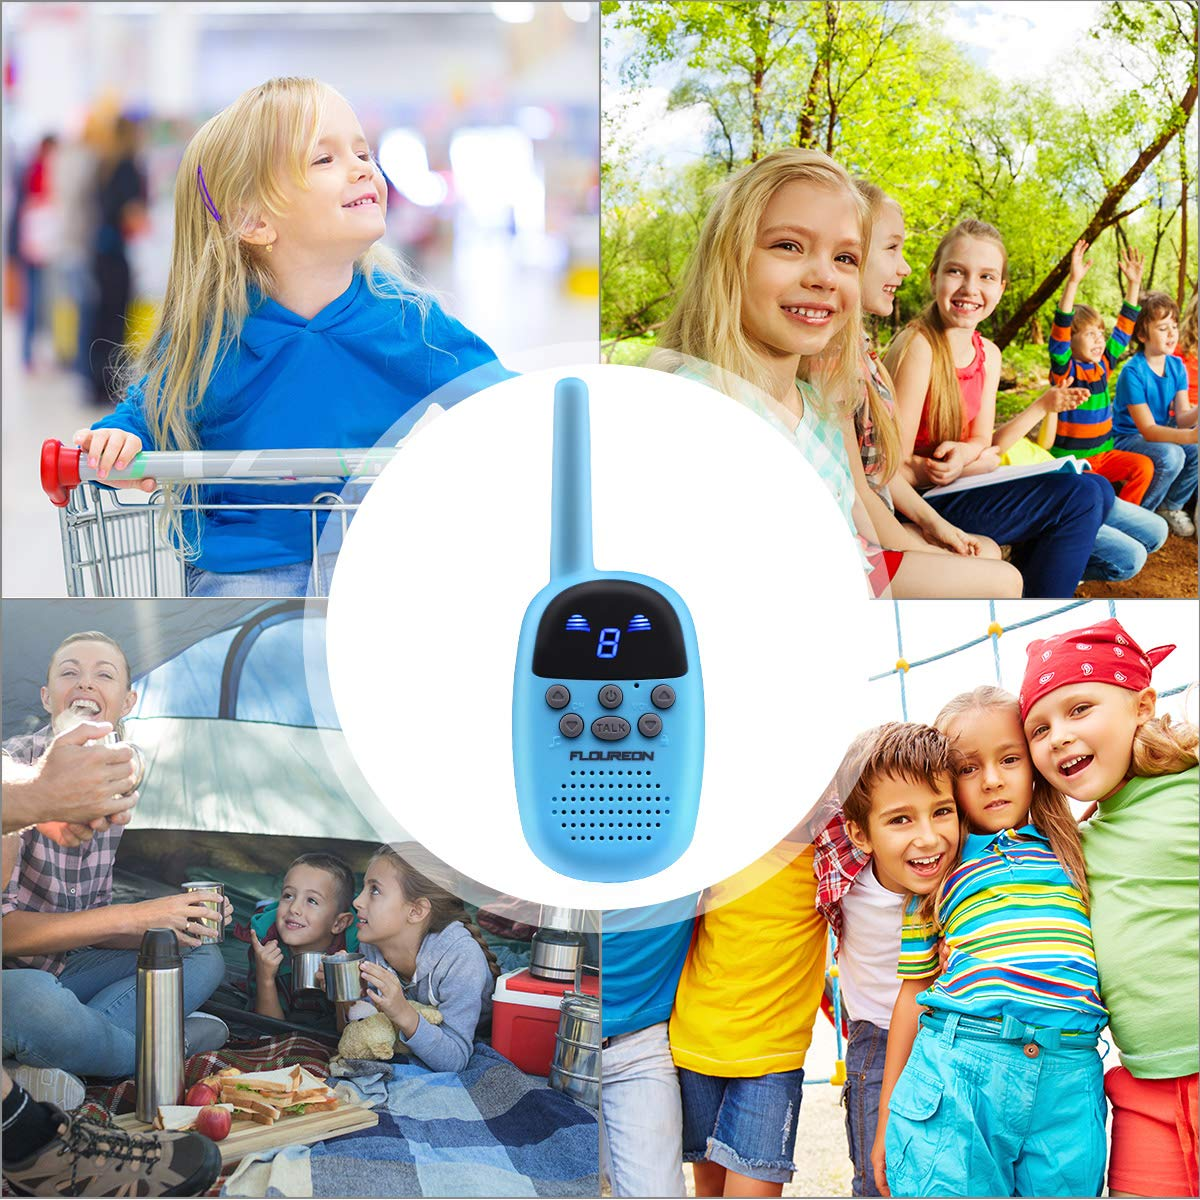 Spronto Kids Walkie Talkies 9 Channel Two Way Radio Twins Walkie Talkies FRS/GMRS Handheld Interphone Long Range for Trips Outdoor Activities (Blue) by Spronto (Image #7)